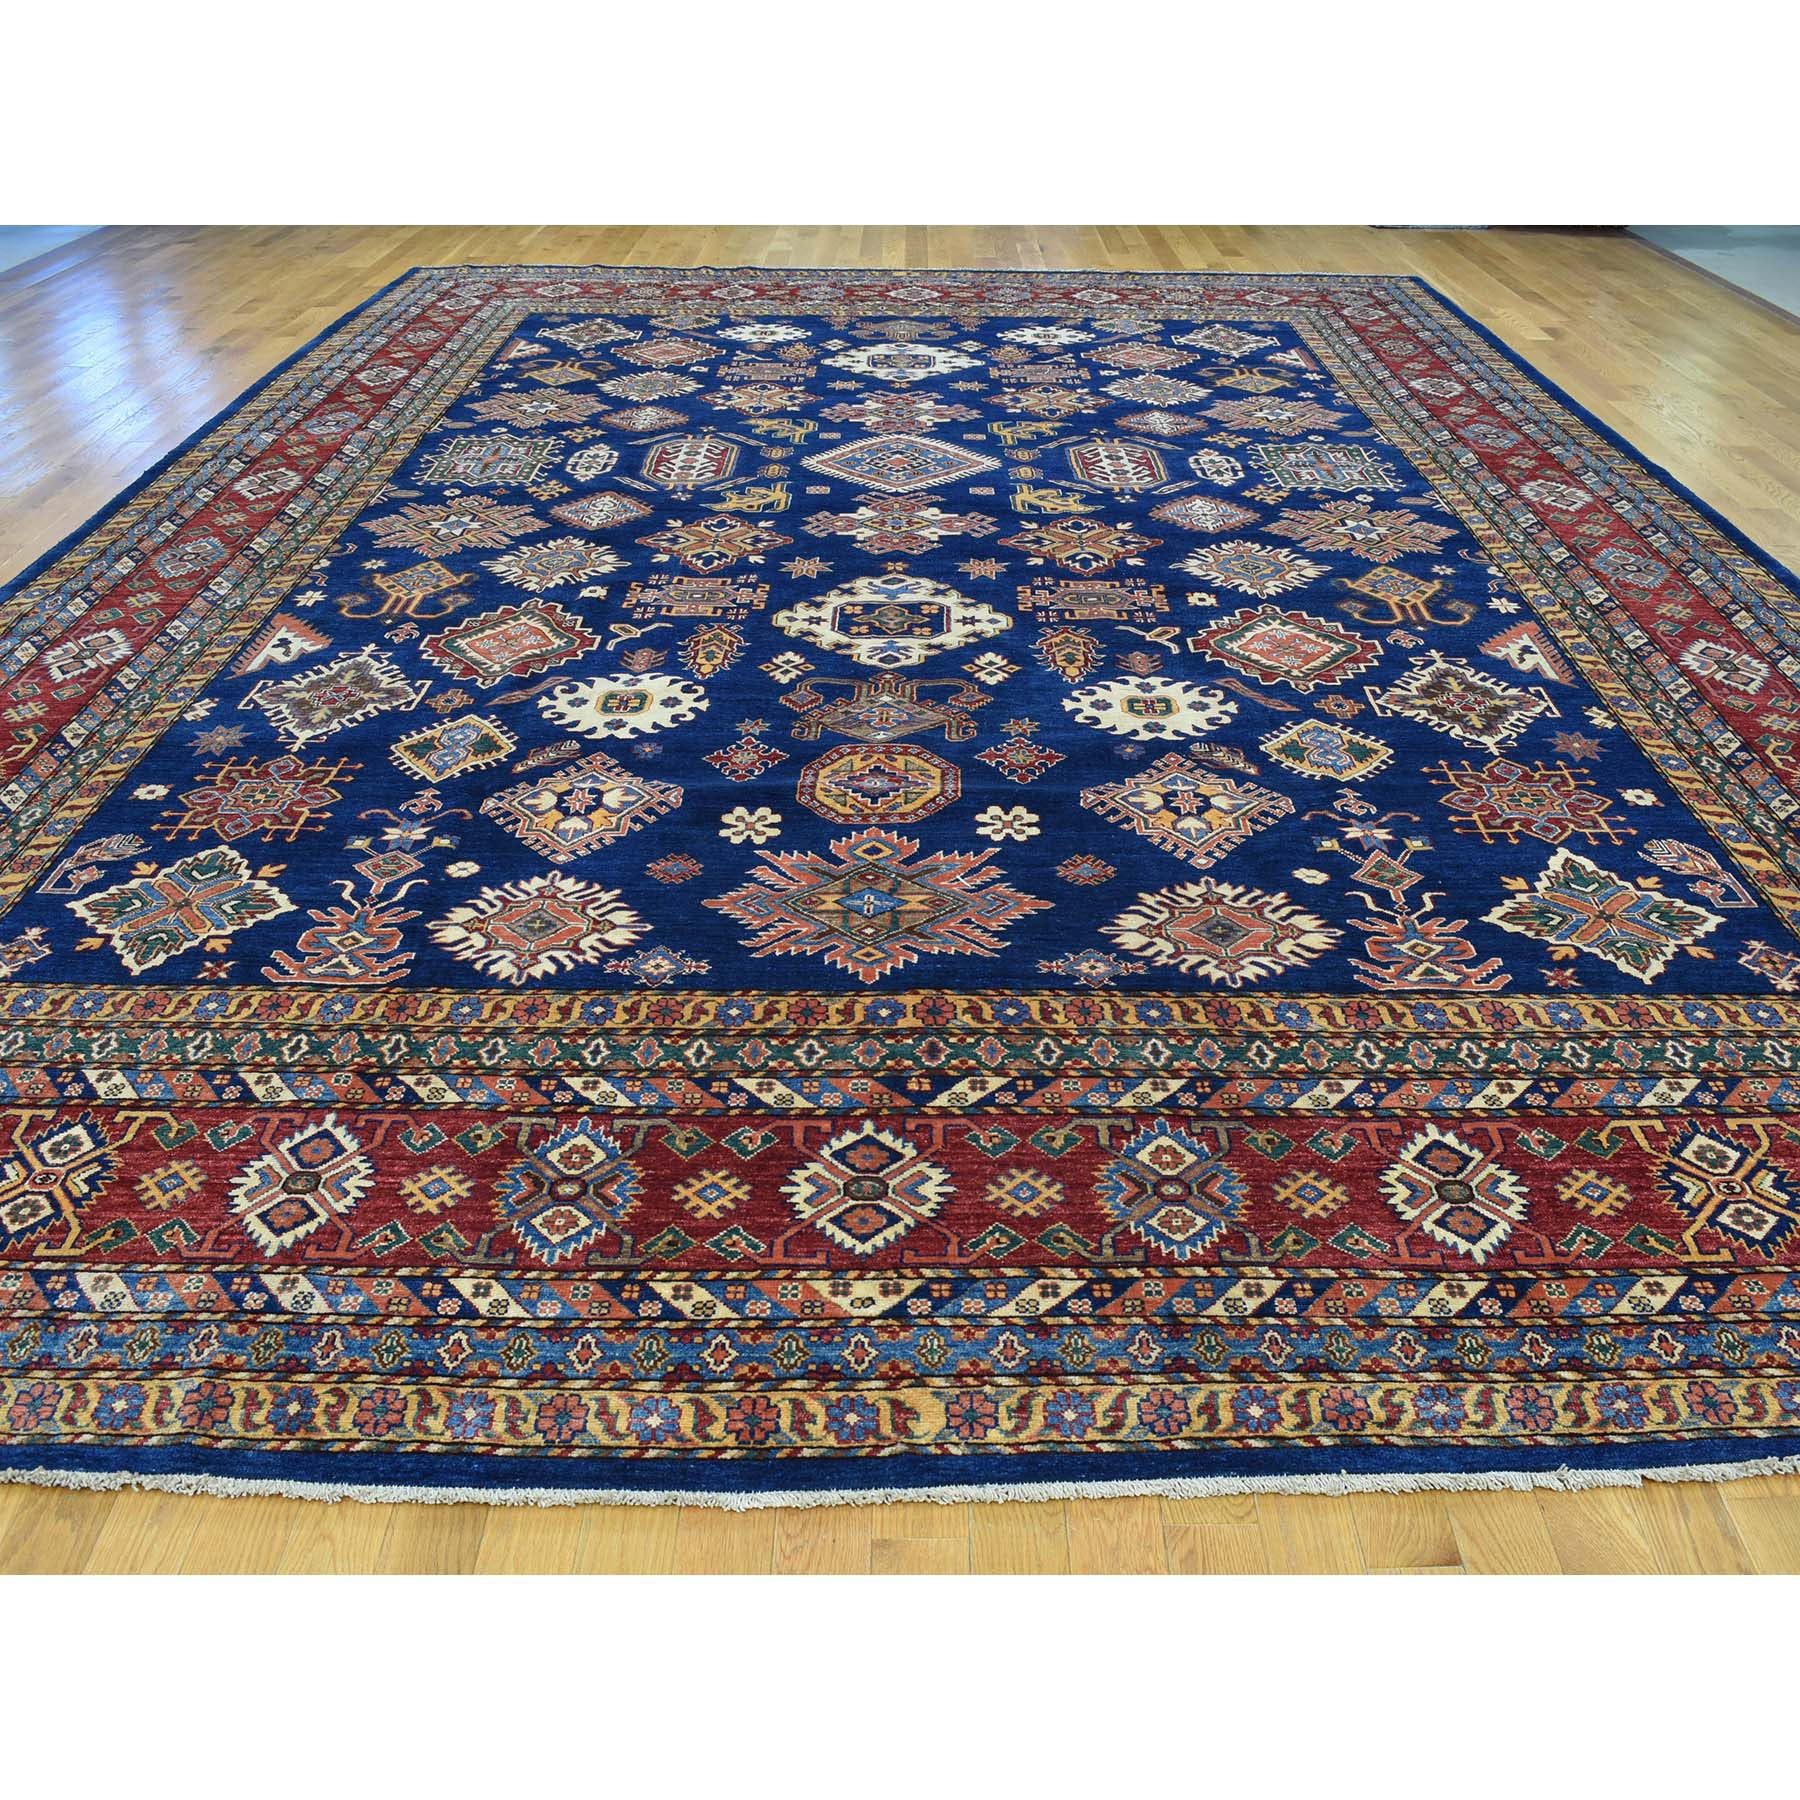 "Handmade Kazak Rectangle Rug > Design# SH31385 > Size: 11'-10"" x 16'-2"" [ONLINE ONLY]"